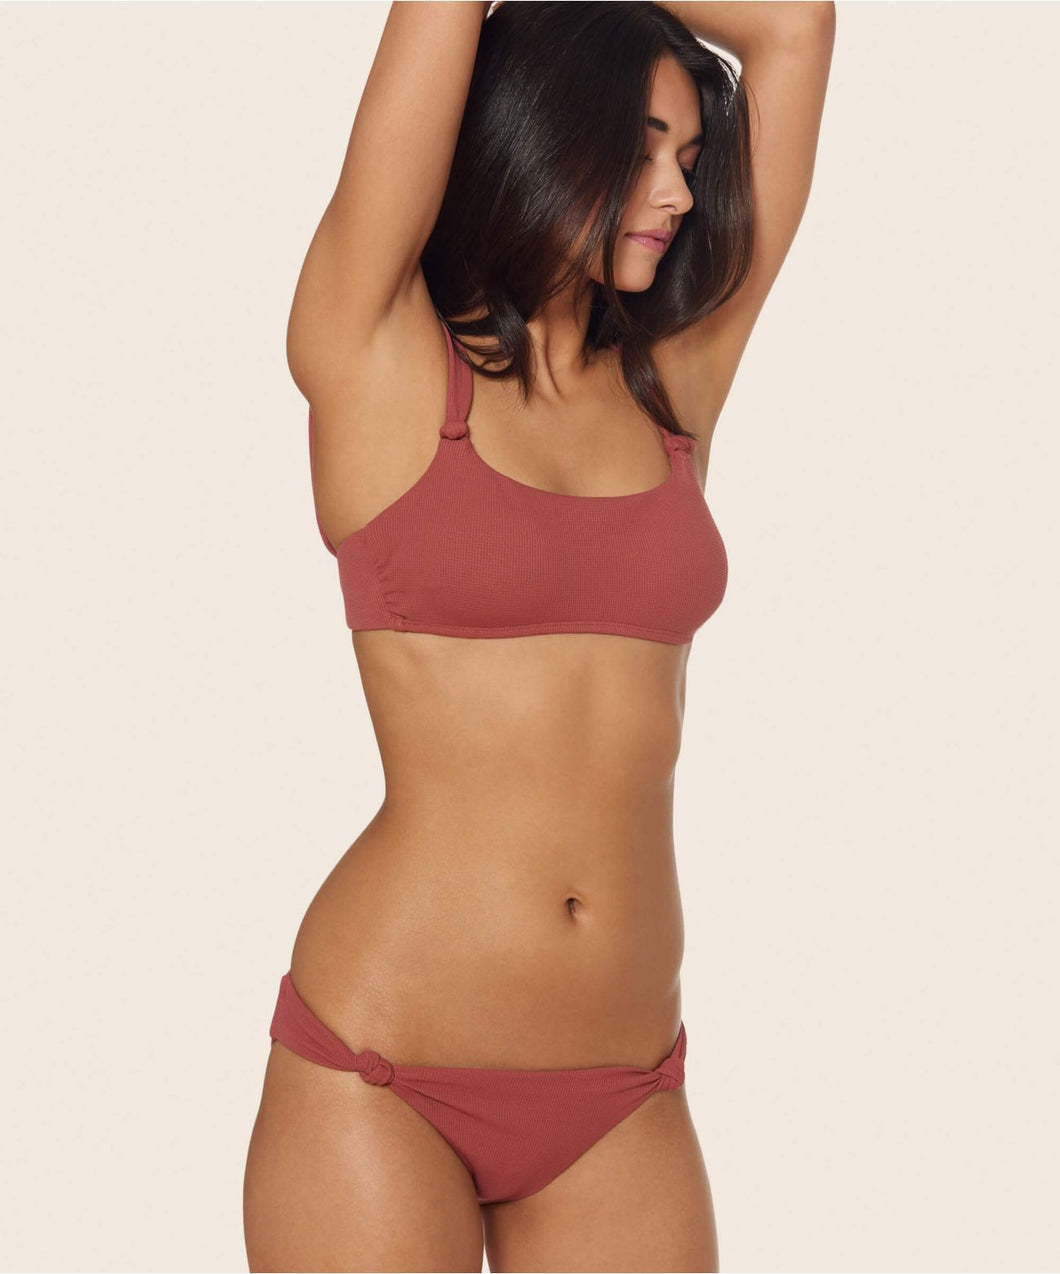 KNOTTY SCOOP BOTTOM SAHARA -   Dolce Vita